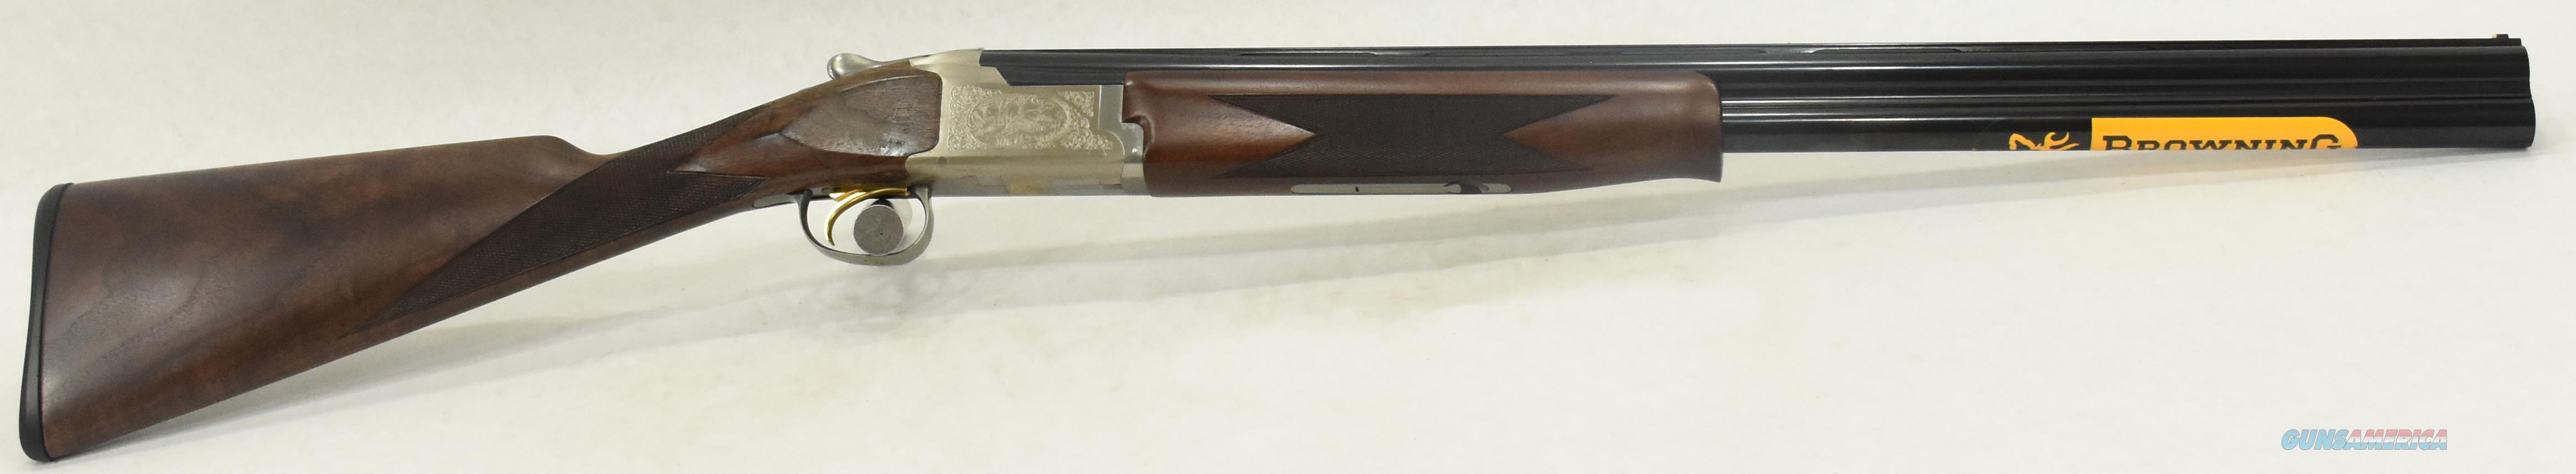 Citori 725 Fthr Superlight 12 Ga 26-3In 0180764005  Guns > Shotguns > Browning Shotguns > Over Unders > Citori > Hunting